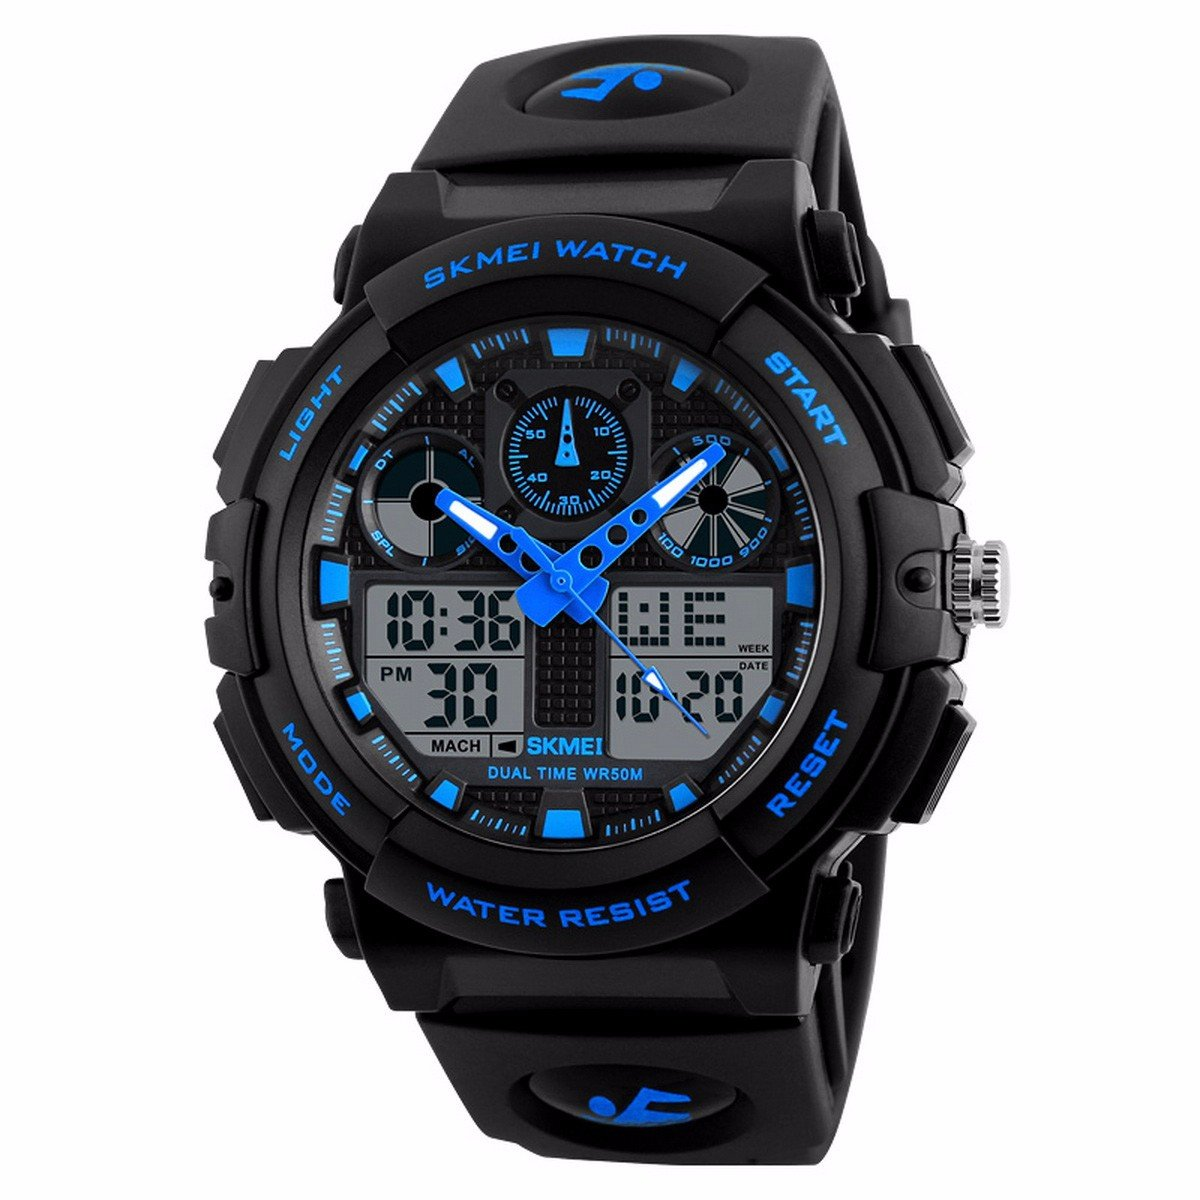 OLSUS 50m Watwrproof Men's Sports Watch, Digital Chronograph Wristwatch Blue